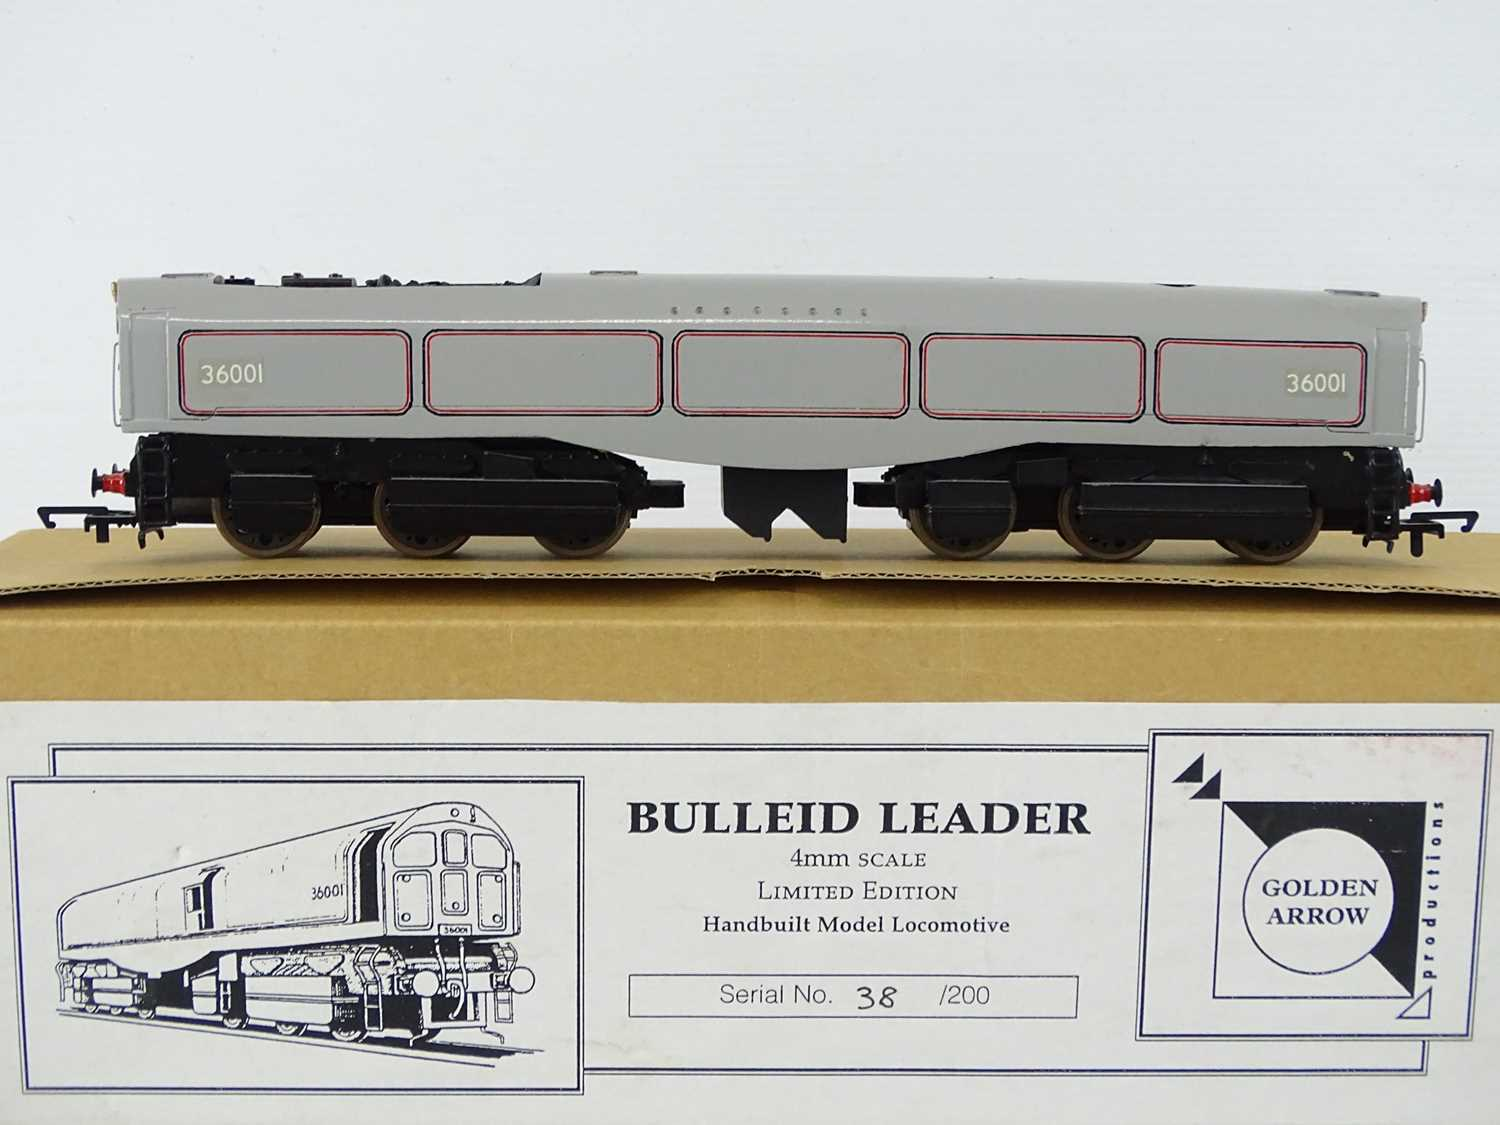 A GOLDEN ARROW PRODUCTIONS OO Gauge hand built limited edition - 38/200 - Bulleid Leader - Image 2 of 4